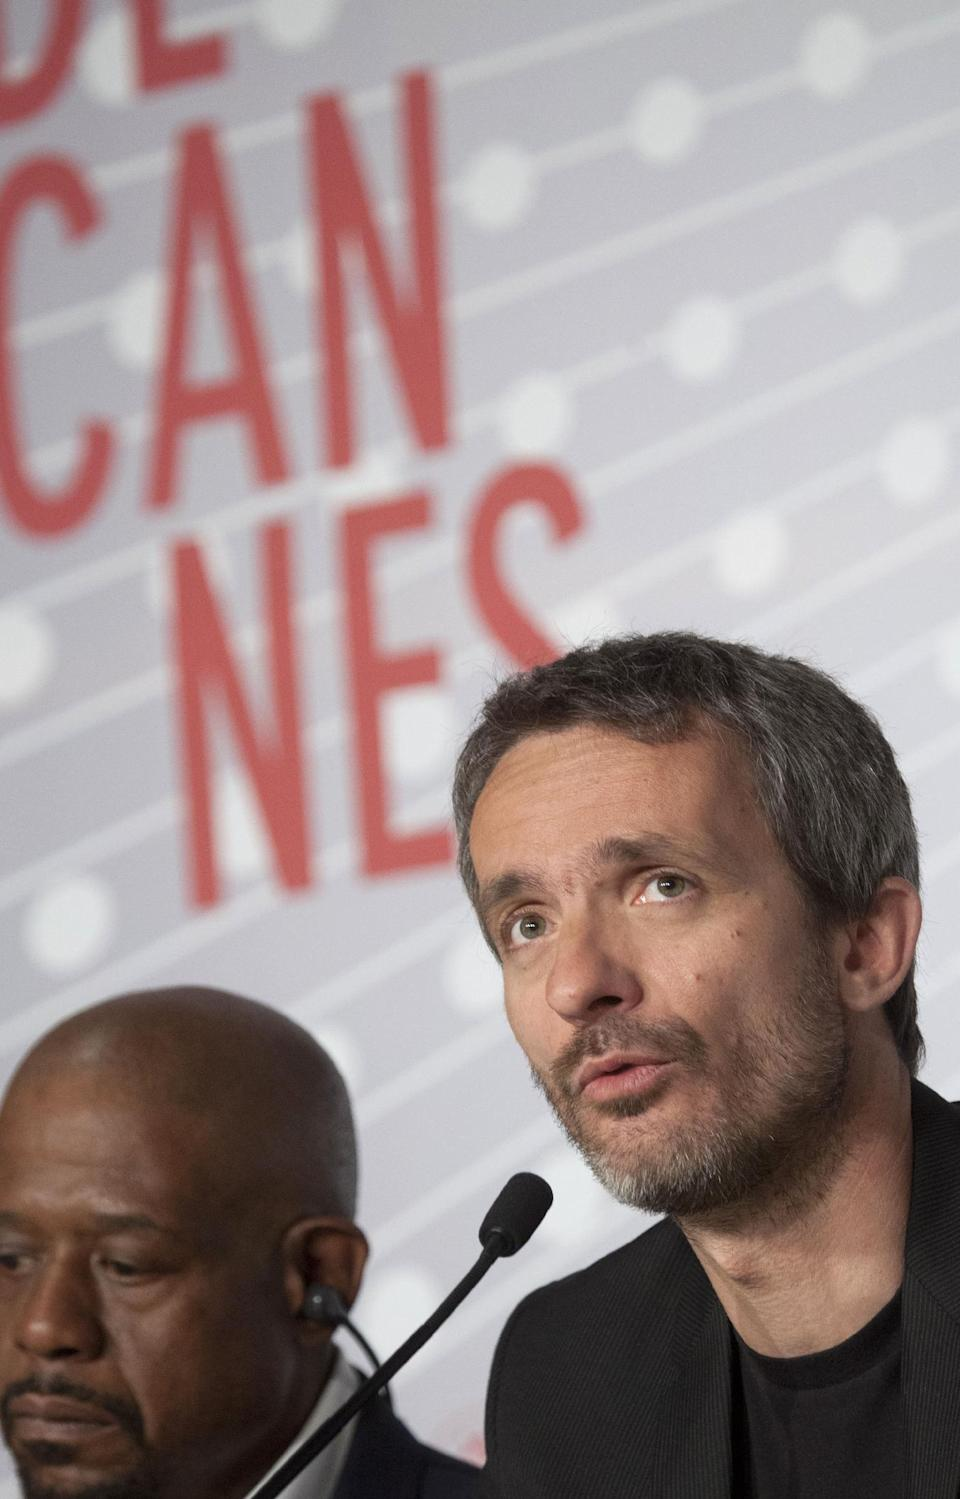 Director Jerome Salle speaks during a press conference for the film Zulu at the 66th international film festival, in Cannes, southern France, Sunday, May 26, 2013. (AP Photo/Virginia Mayo)